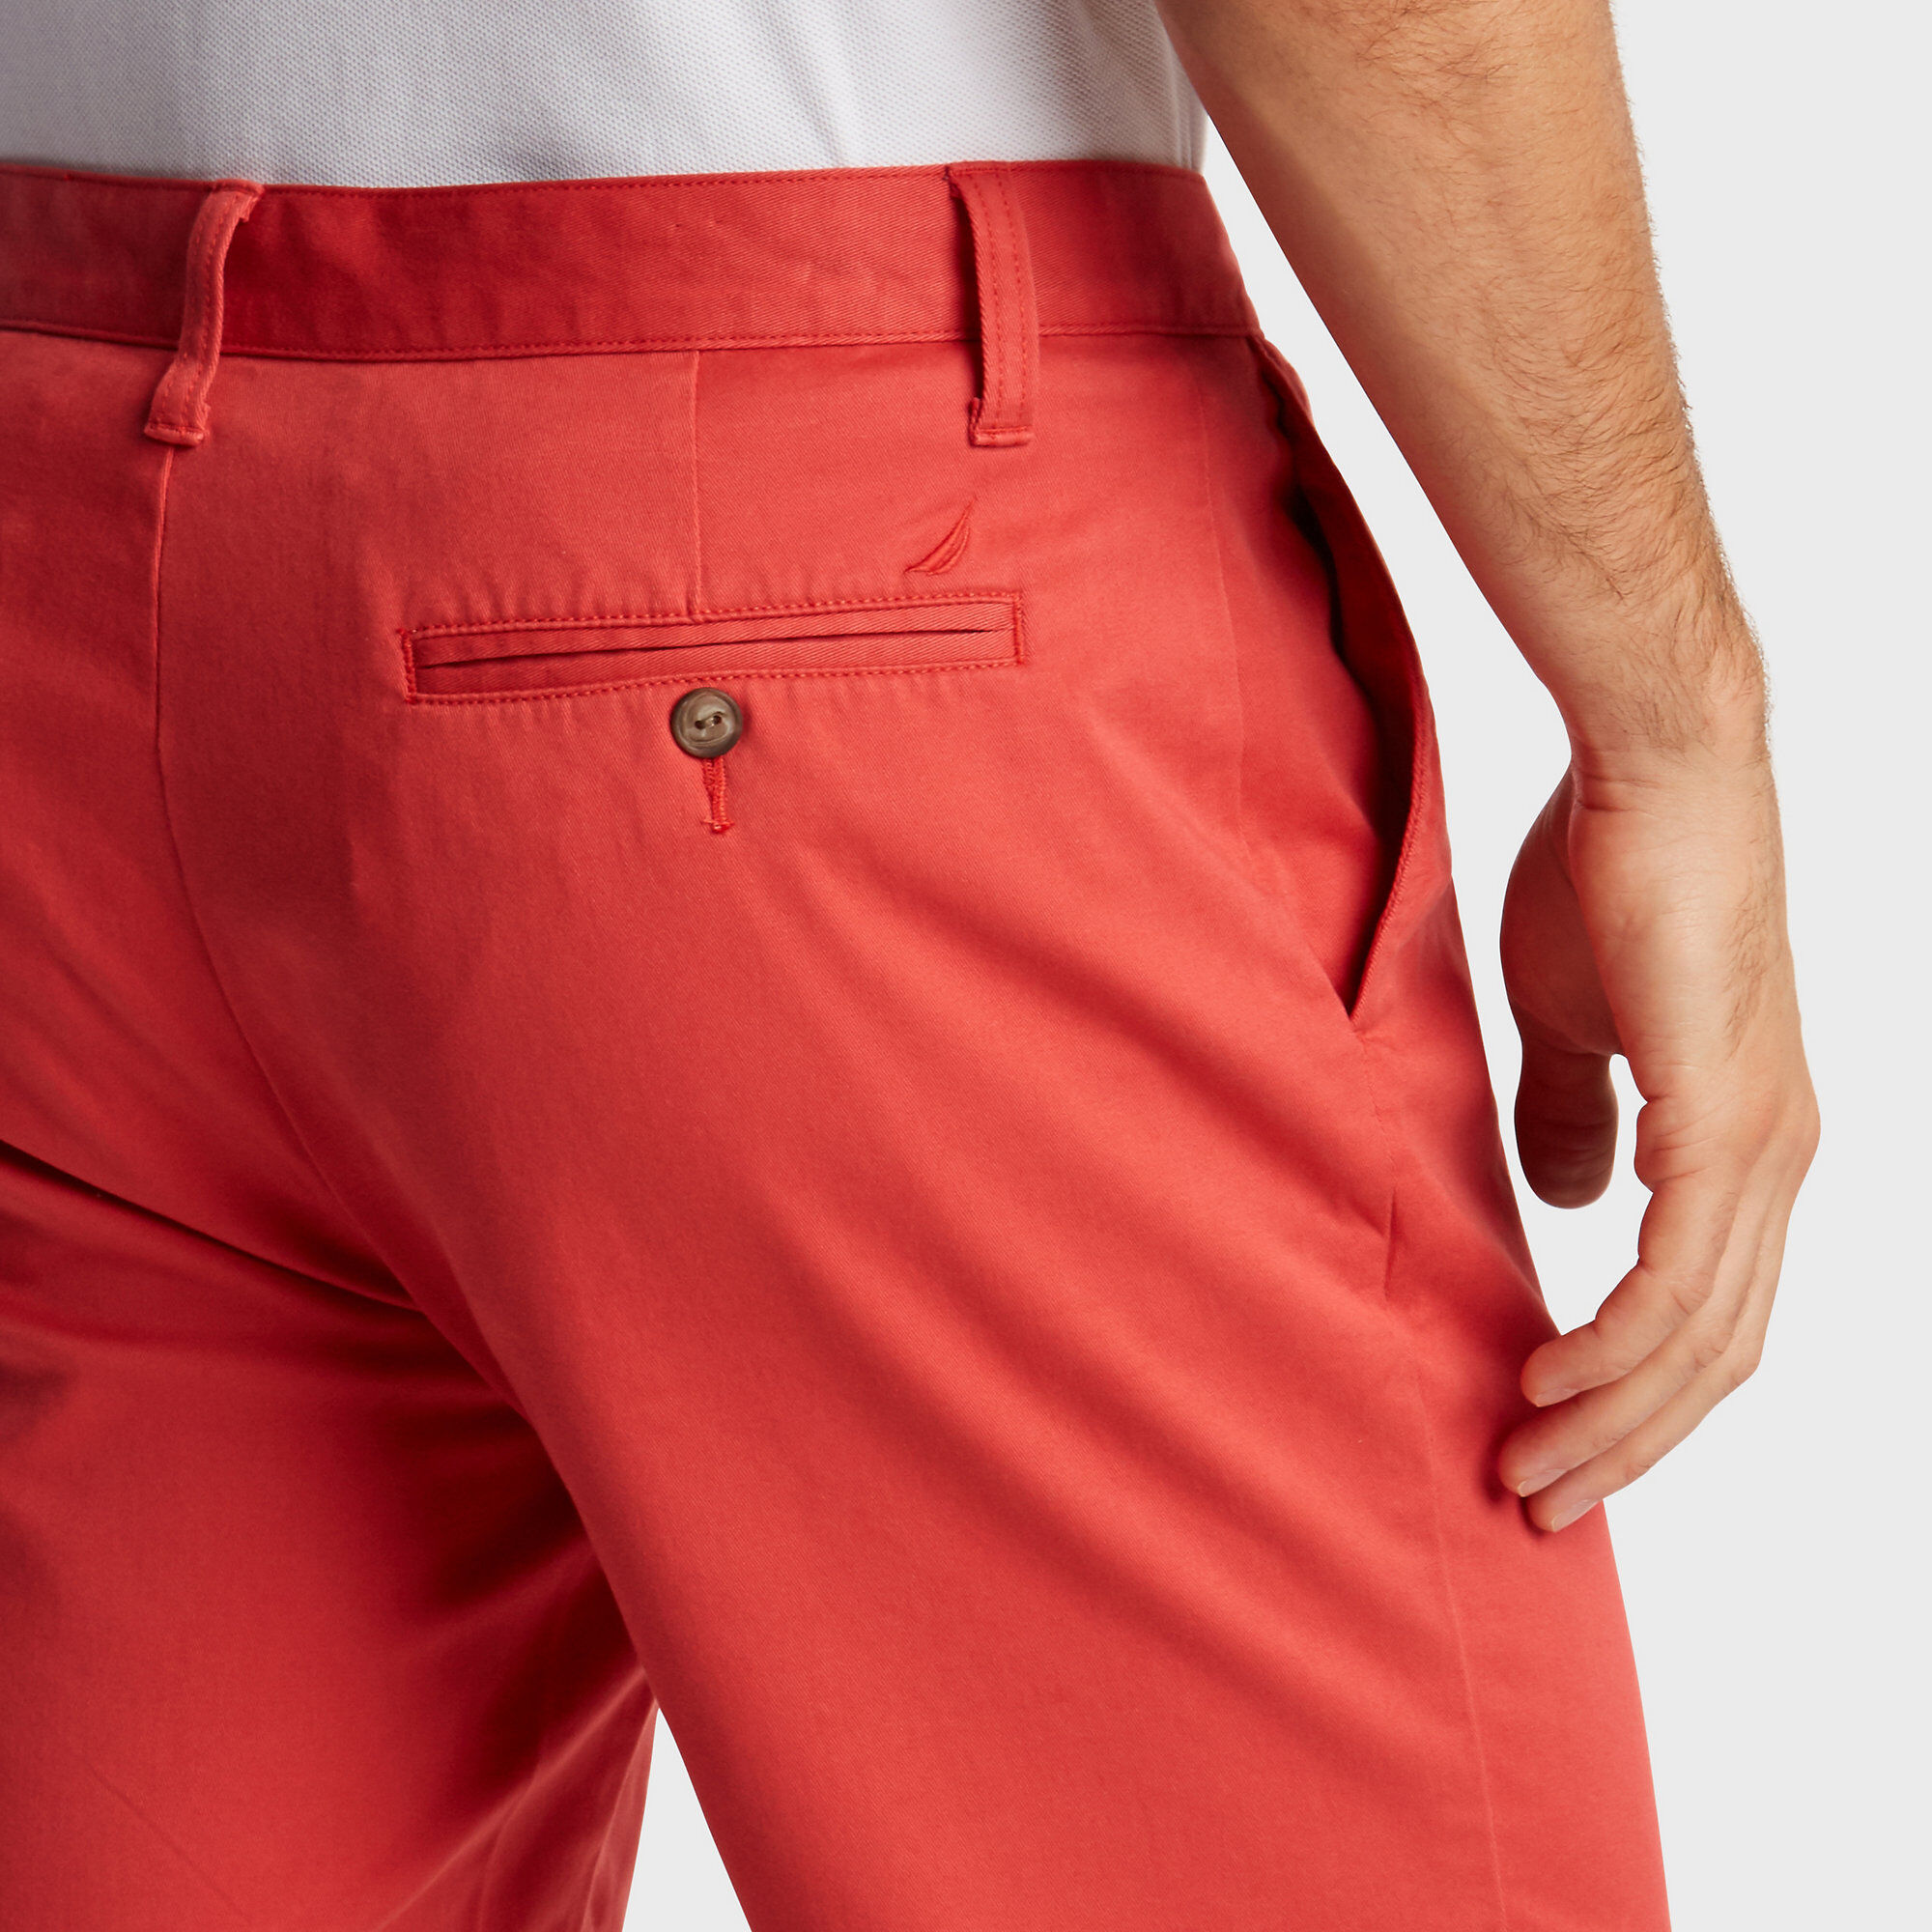 Nautica-Mens-8-5-034-Classic-Fit-Deck-Short-With-Stretch thumbnail 45